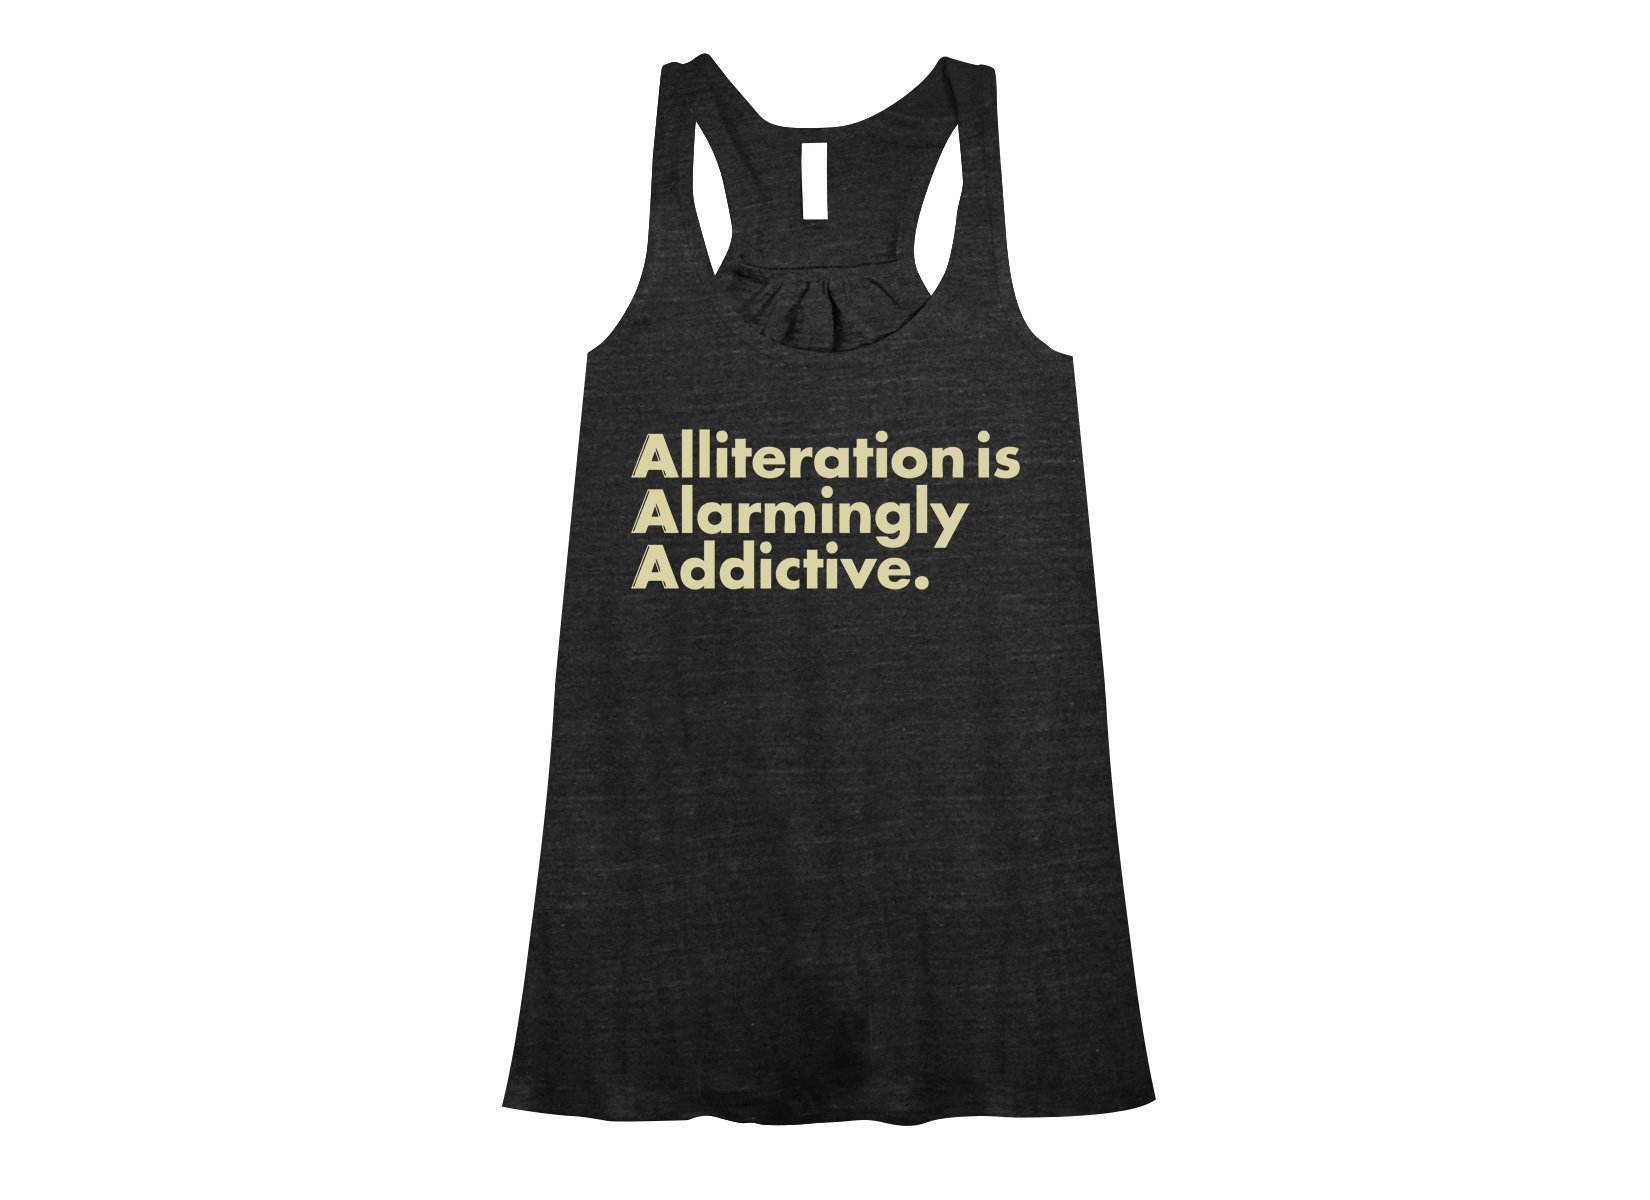 Alliteration Is Alarmingly Addictive on Womens Tanks T-Shirt